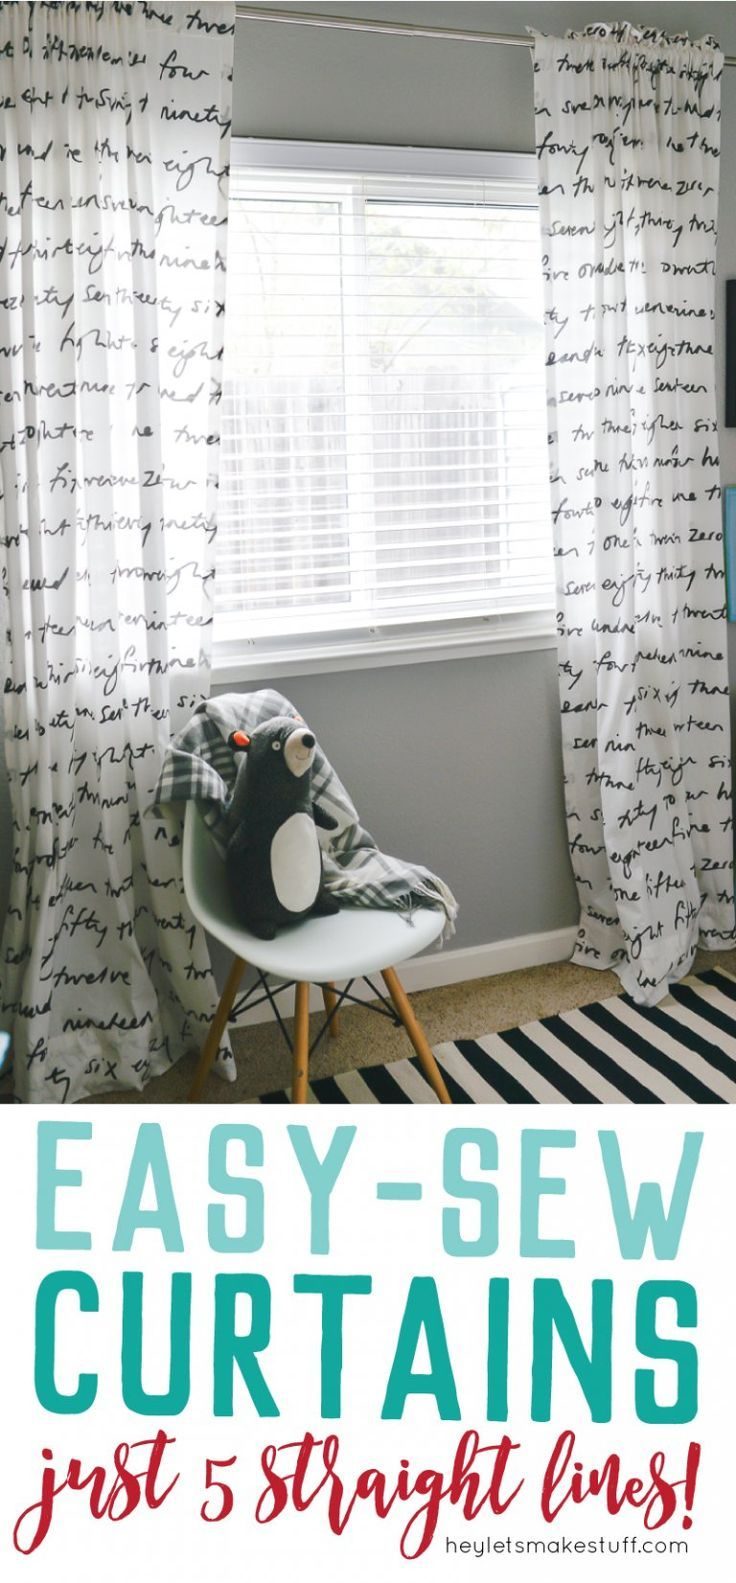 Easy-Sew Curtains